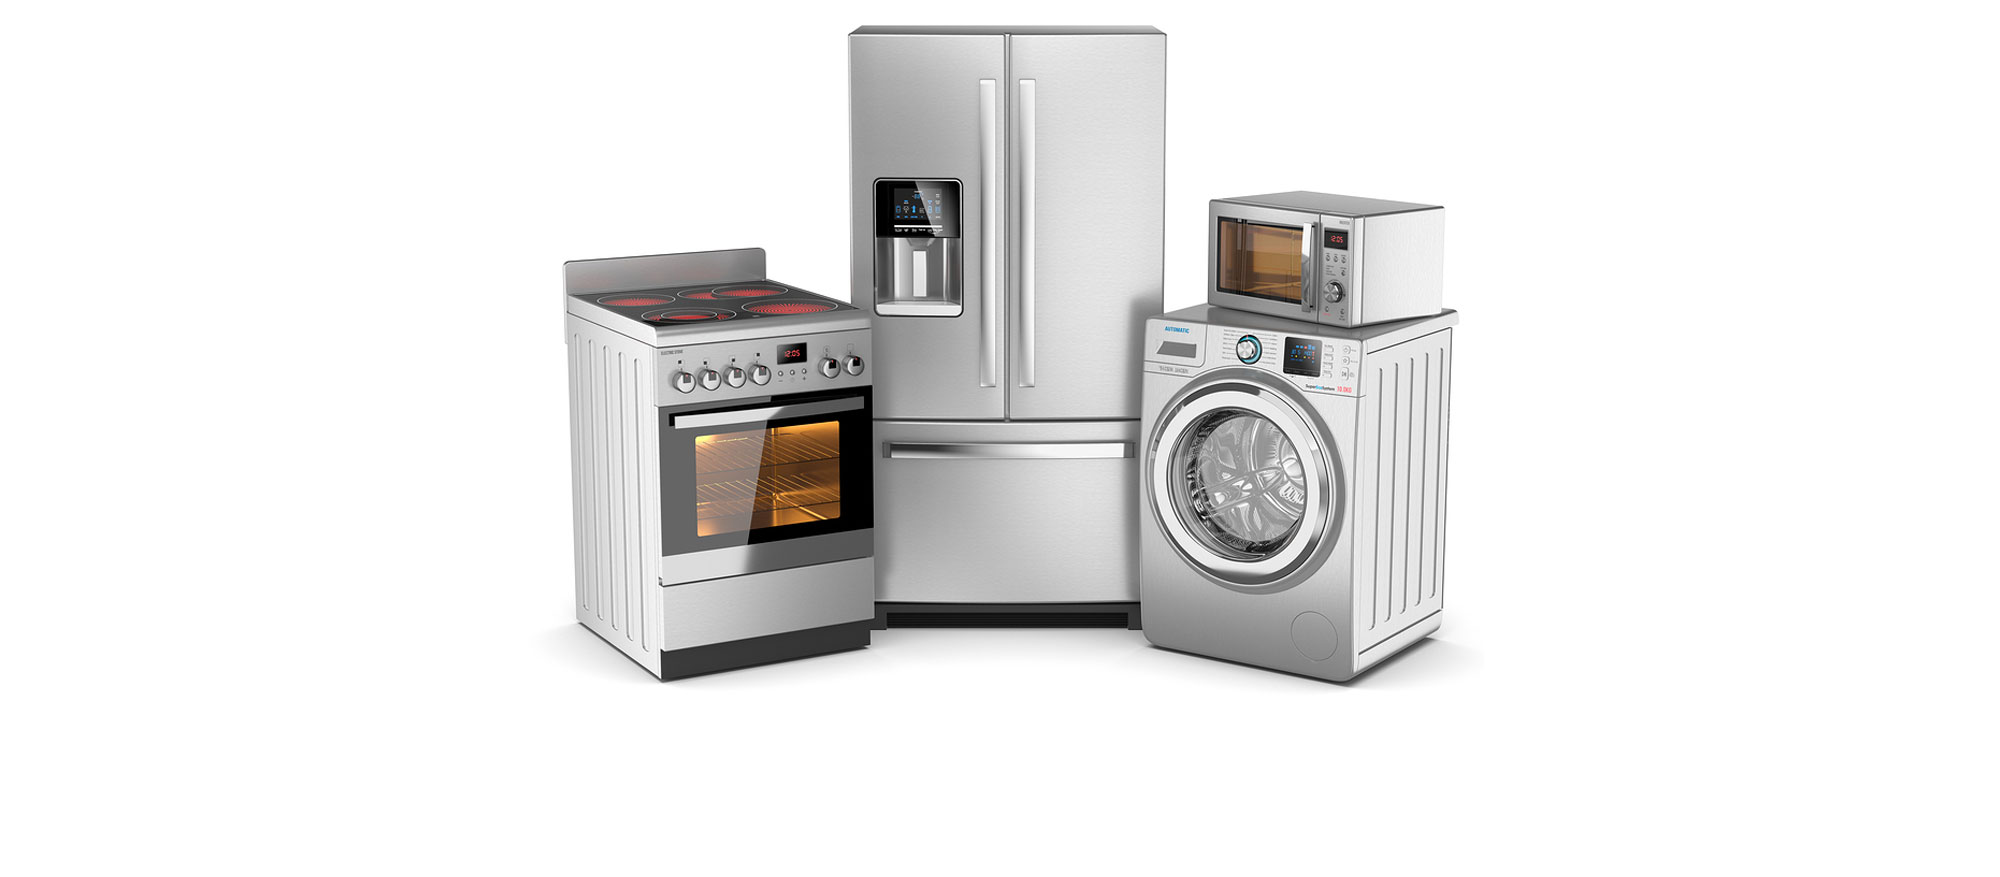 Appliance Services Refrigerator Repair Washer Dryer Repair